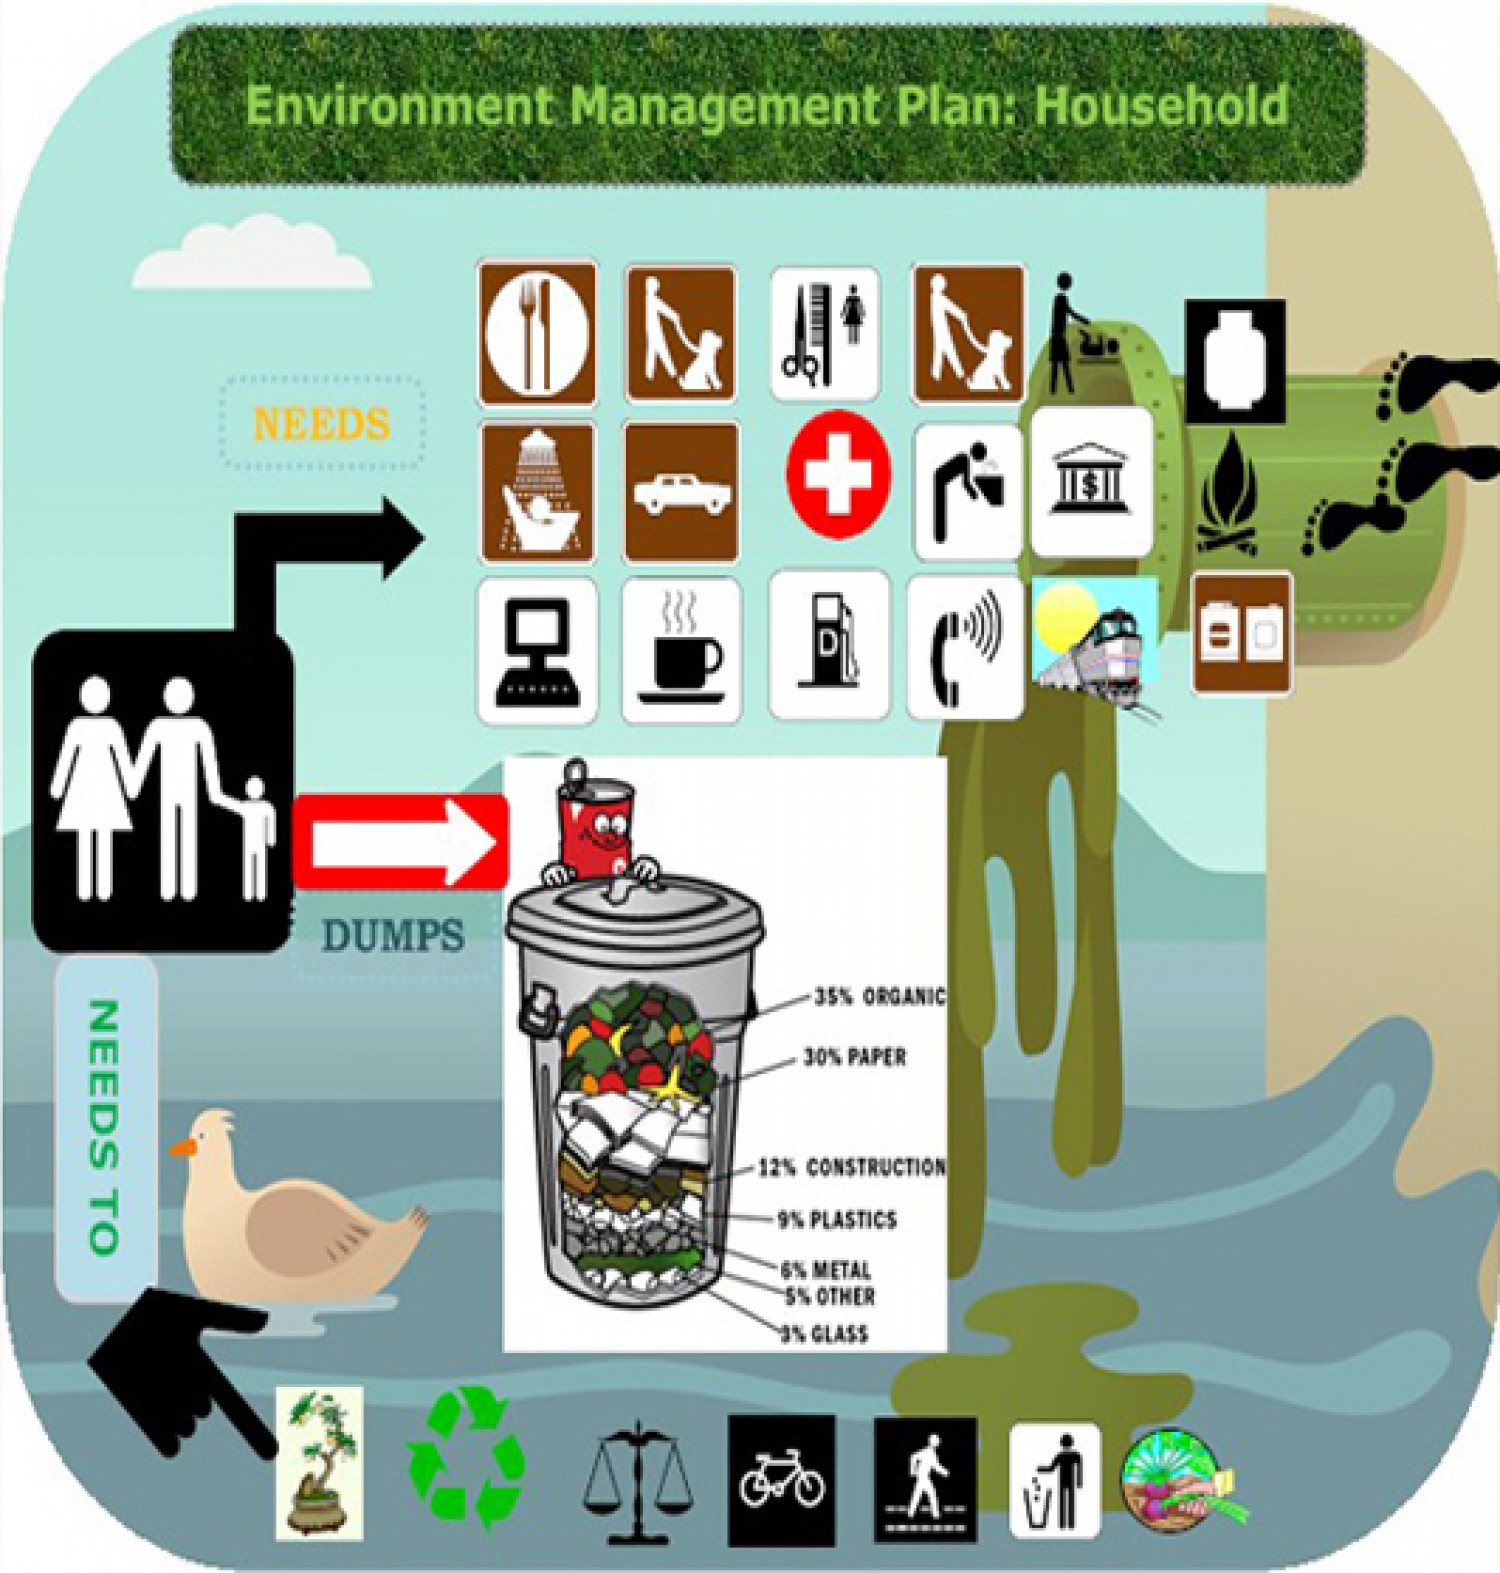 the environmental management The government has many different environmental management companies to help people, and the different ways to help the world also helps people with jobs.